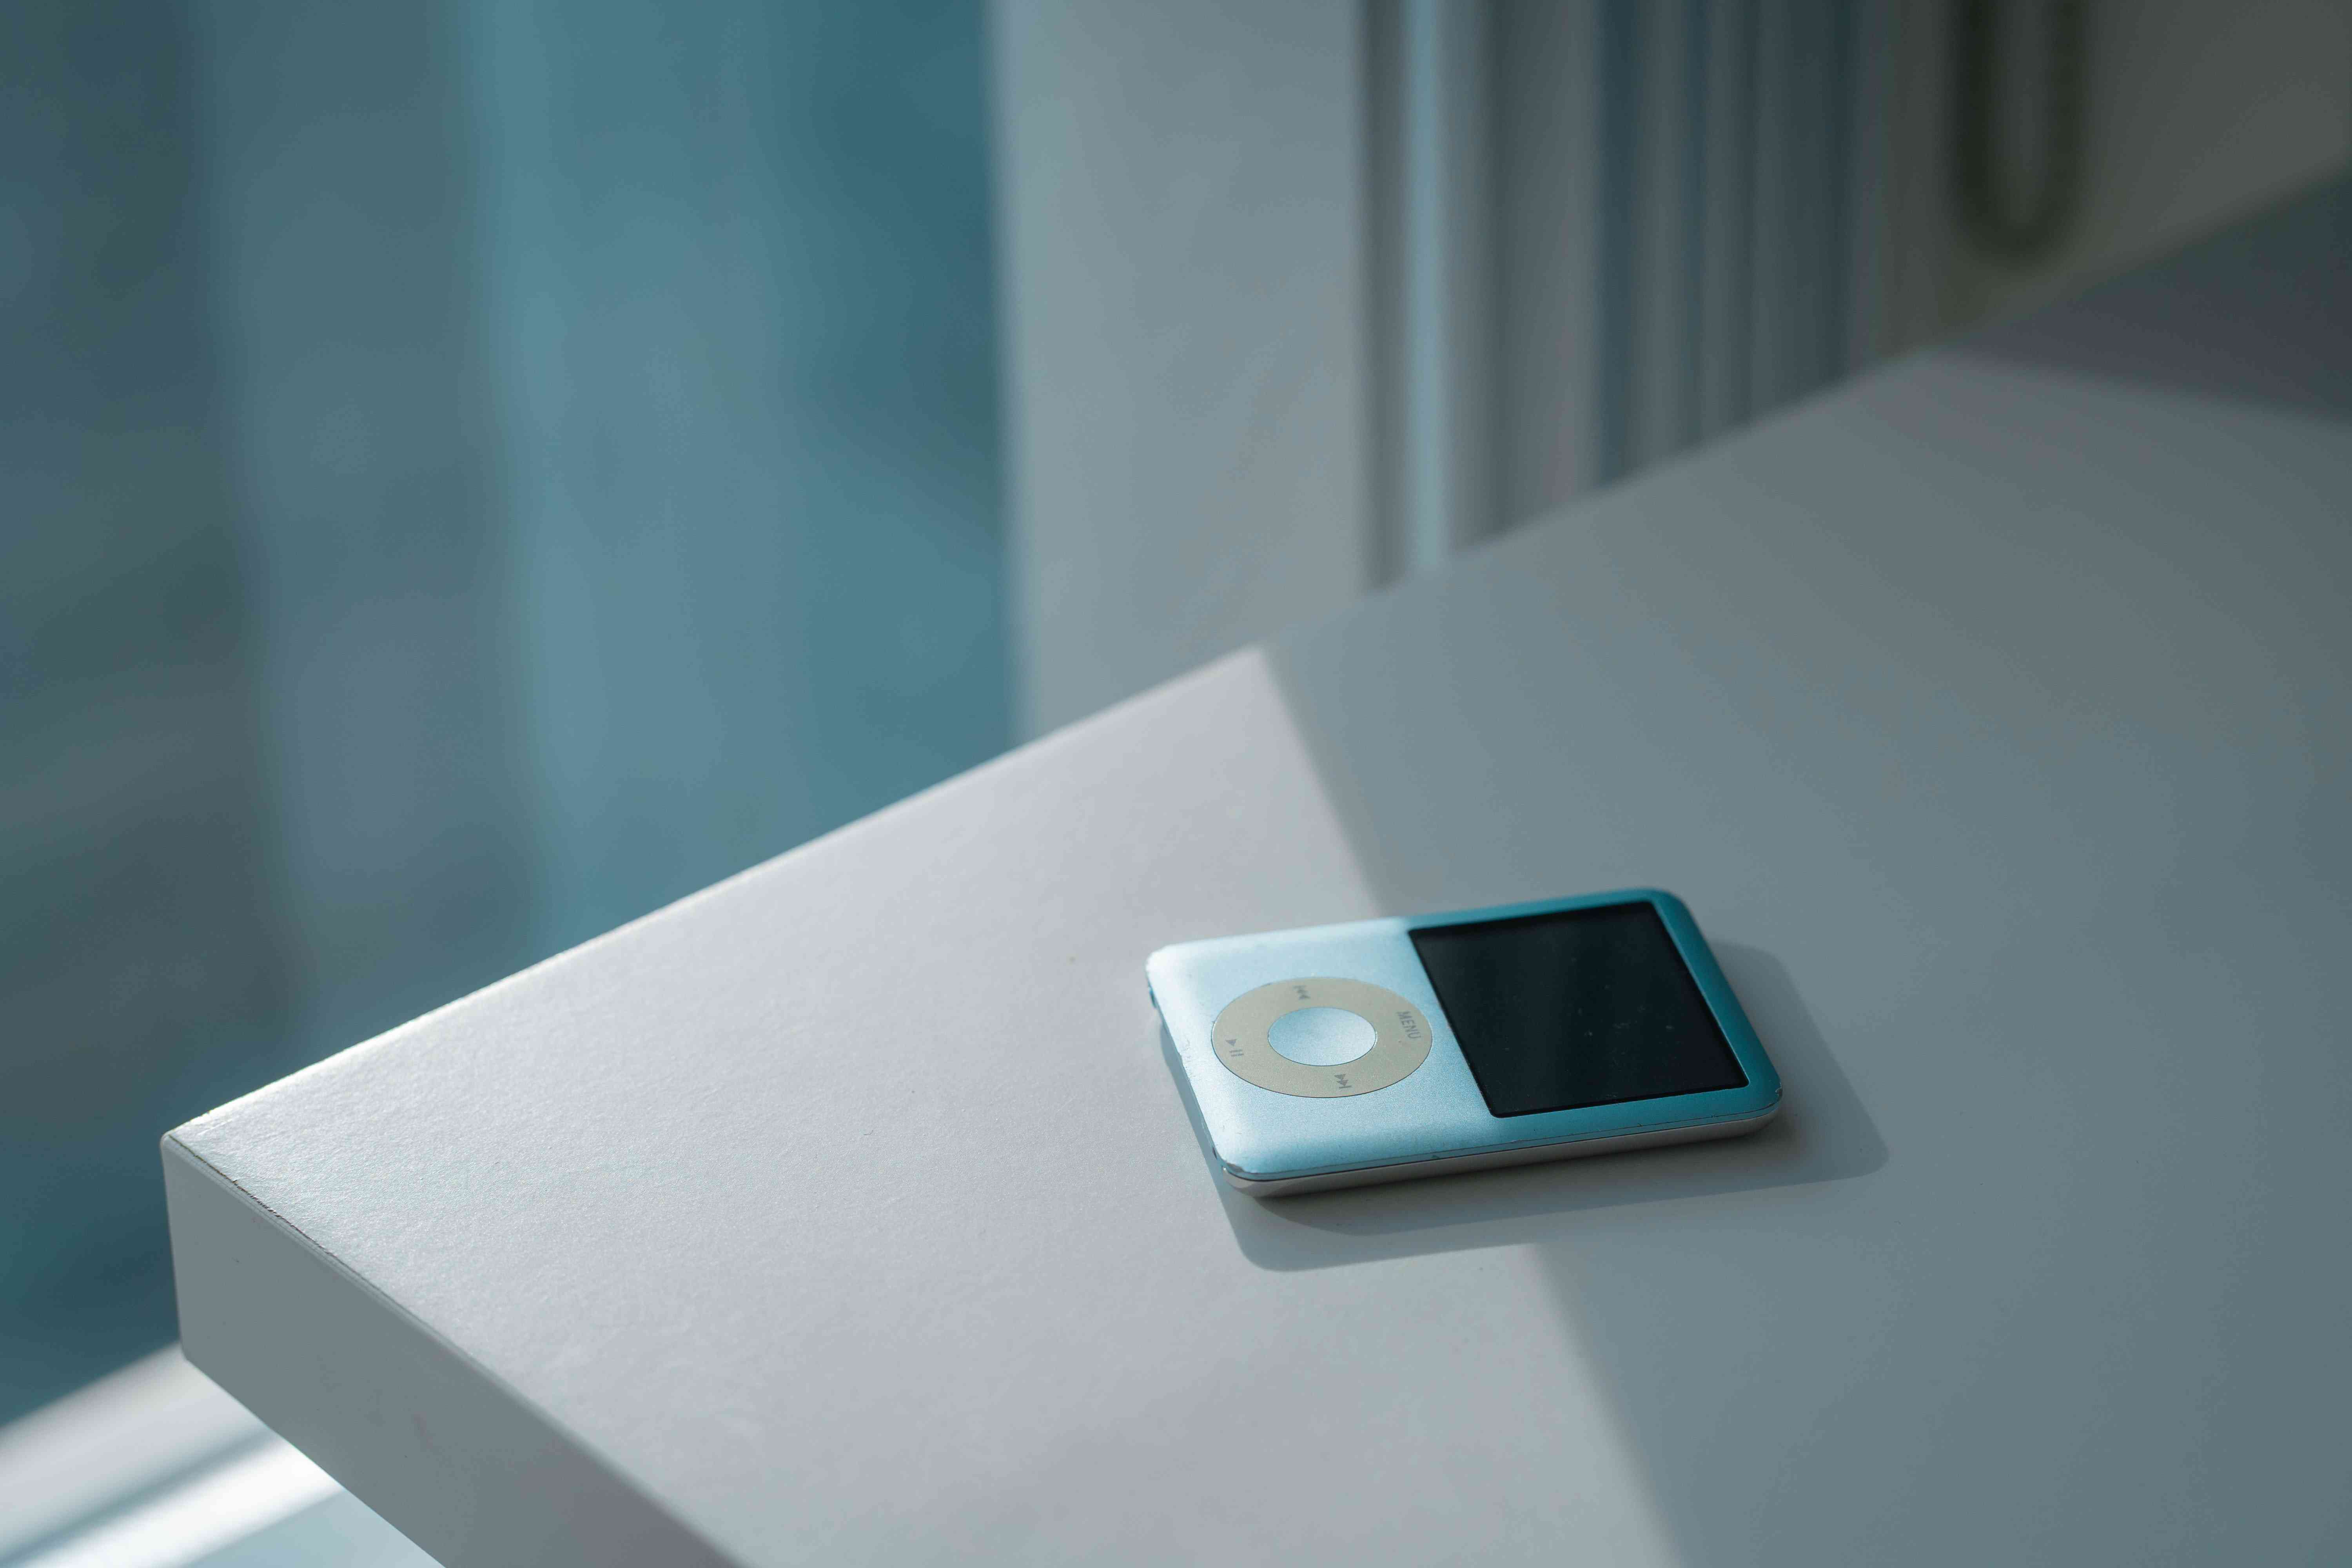 Teal iPod Classic sitting at the edge of a counter.